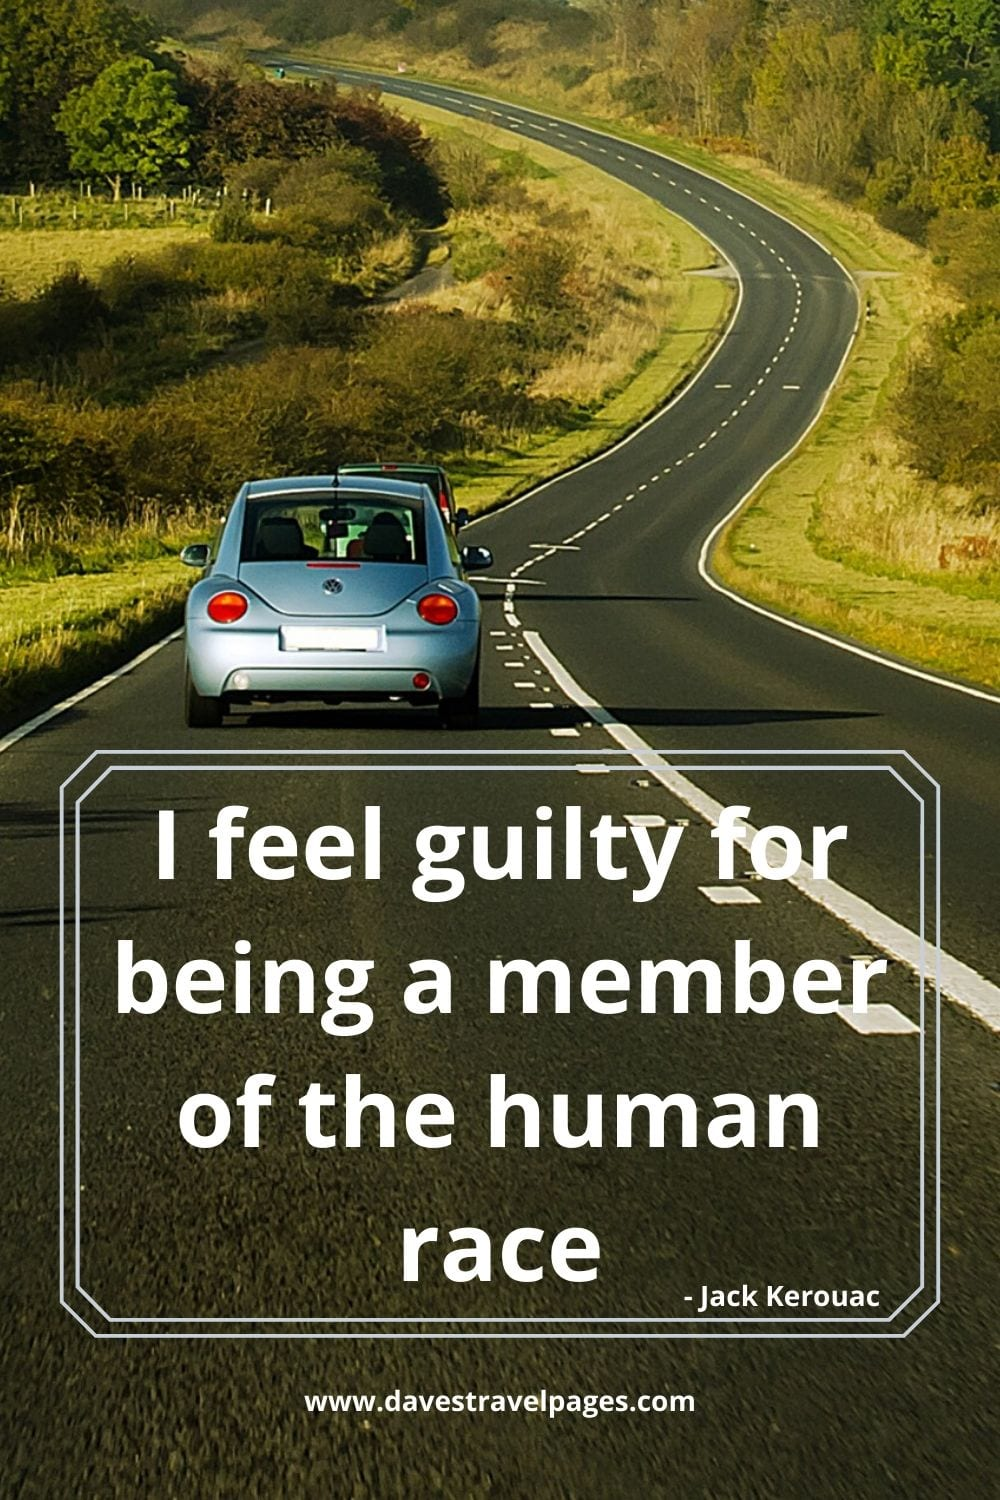 """I feel guilty for being a member of the human race."" - from Big Sur by Jack Kerouac"